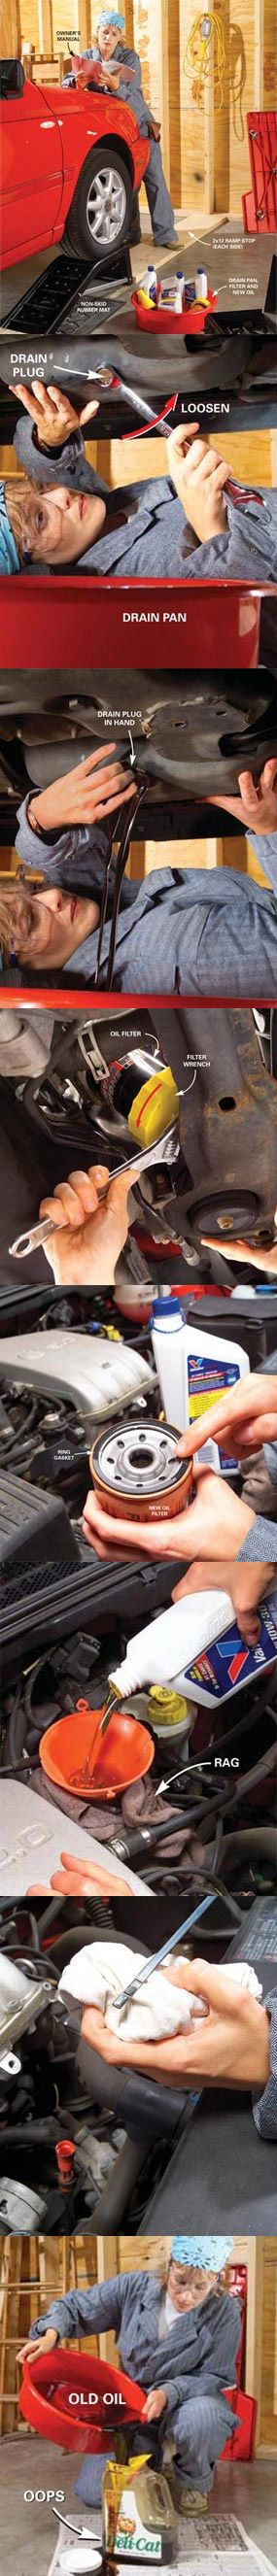 Regular oil changes prolong the life of your car. Save time and money by doing this 20-minute job yourself. And you'll know that it was done right! Learn how to change oil in your car at http://www.familyhandyman.com/DIY-Projects/Car---Truck/Oil-Change/how-to-change-car-oil